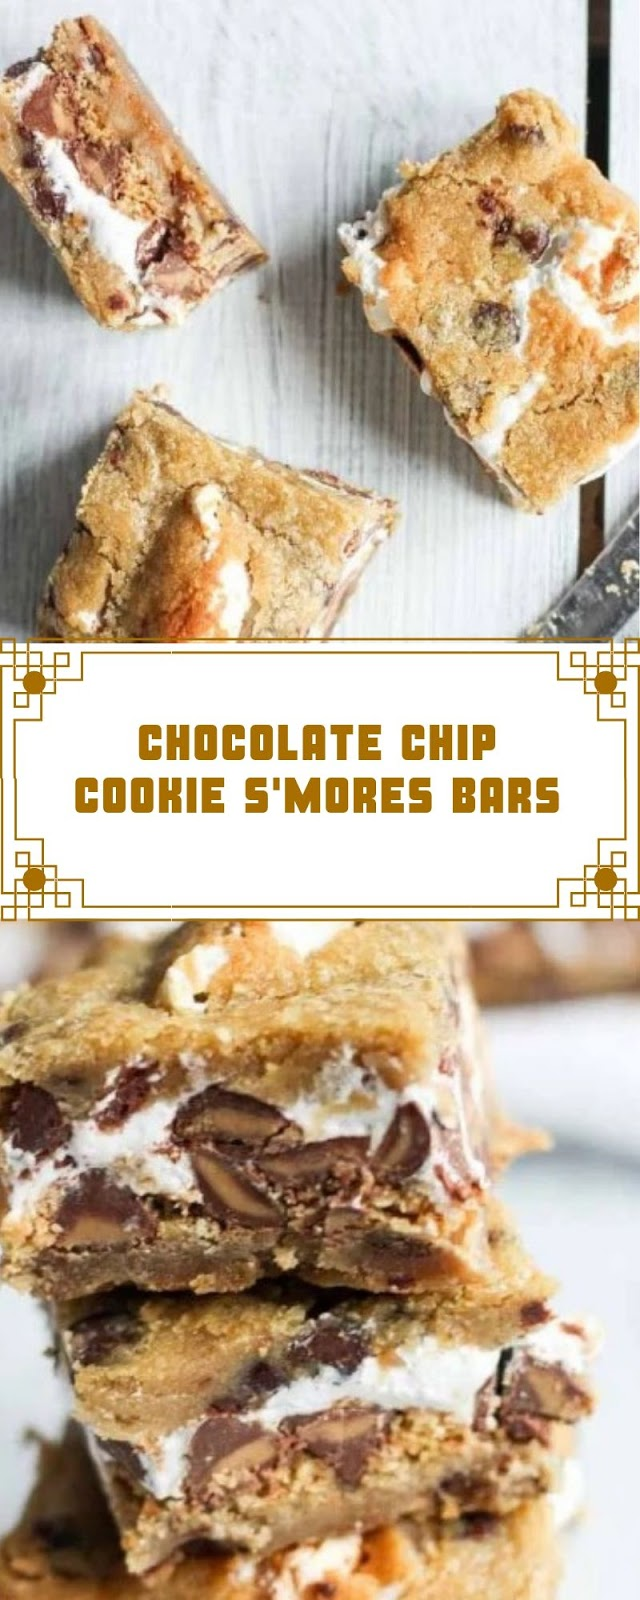 CHOCOLATE CHIP COOKIE S'MORES BARS